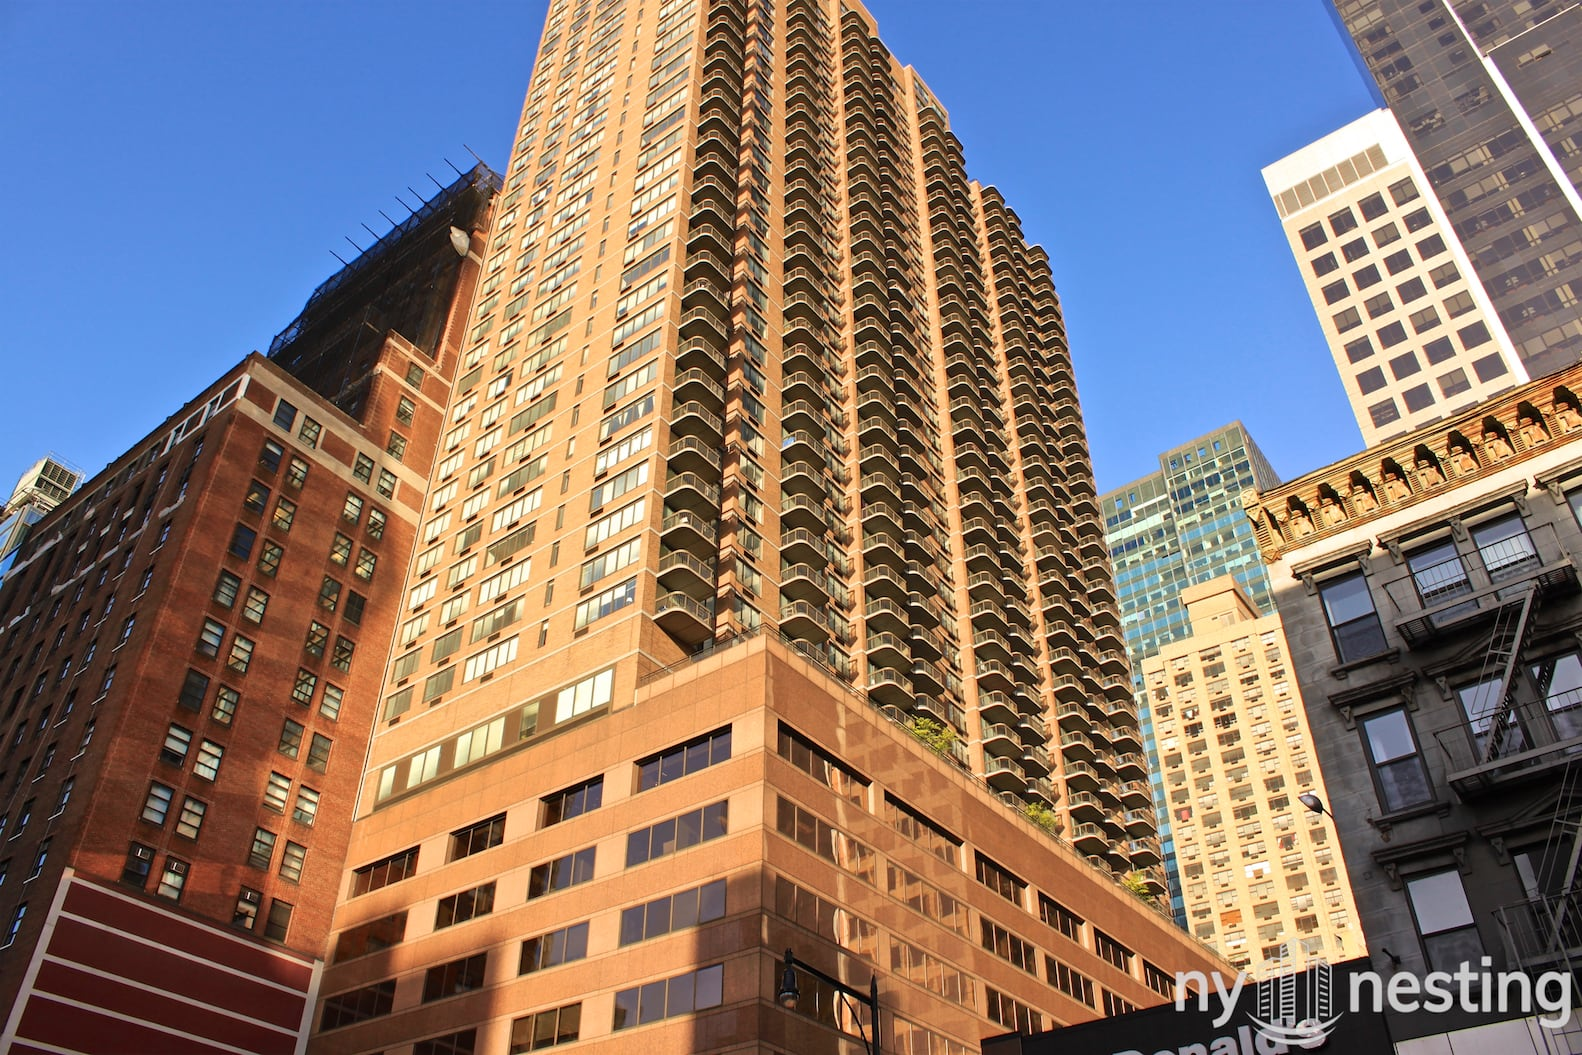 symphony house 235 west 56th st nyc manhattan scout